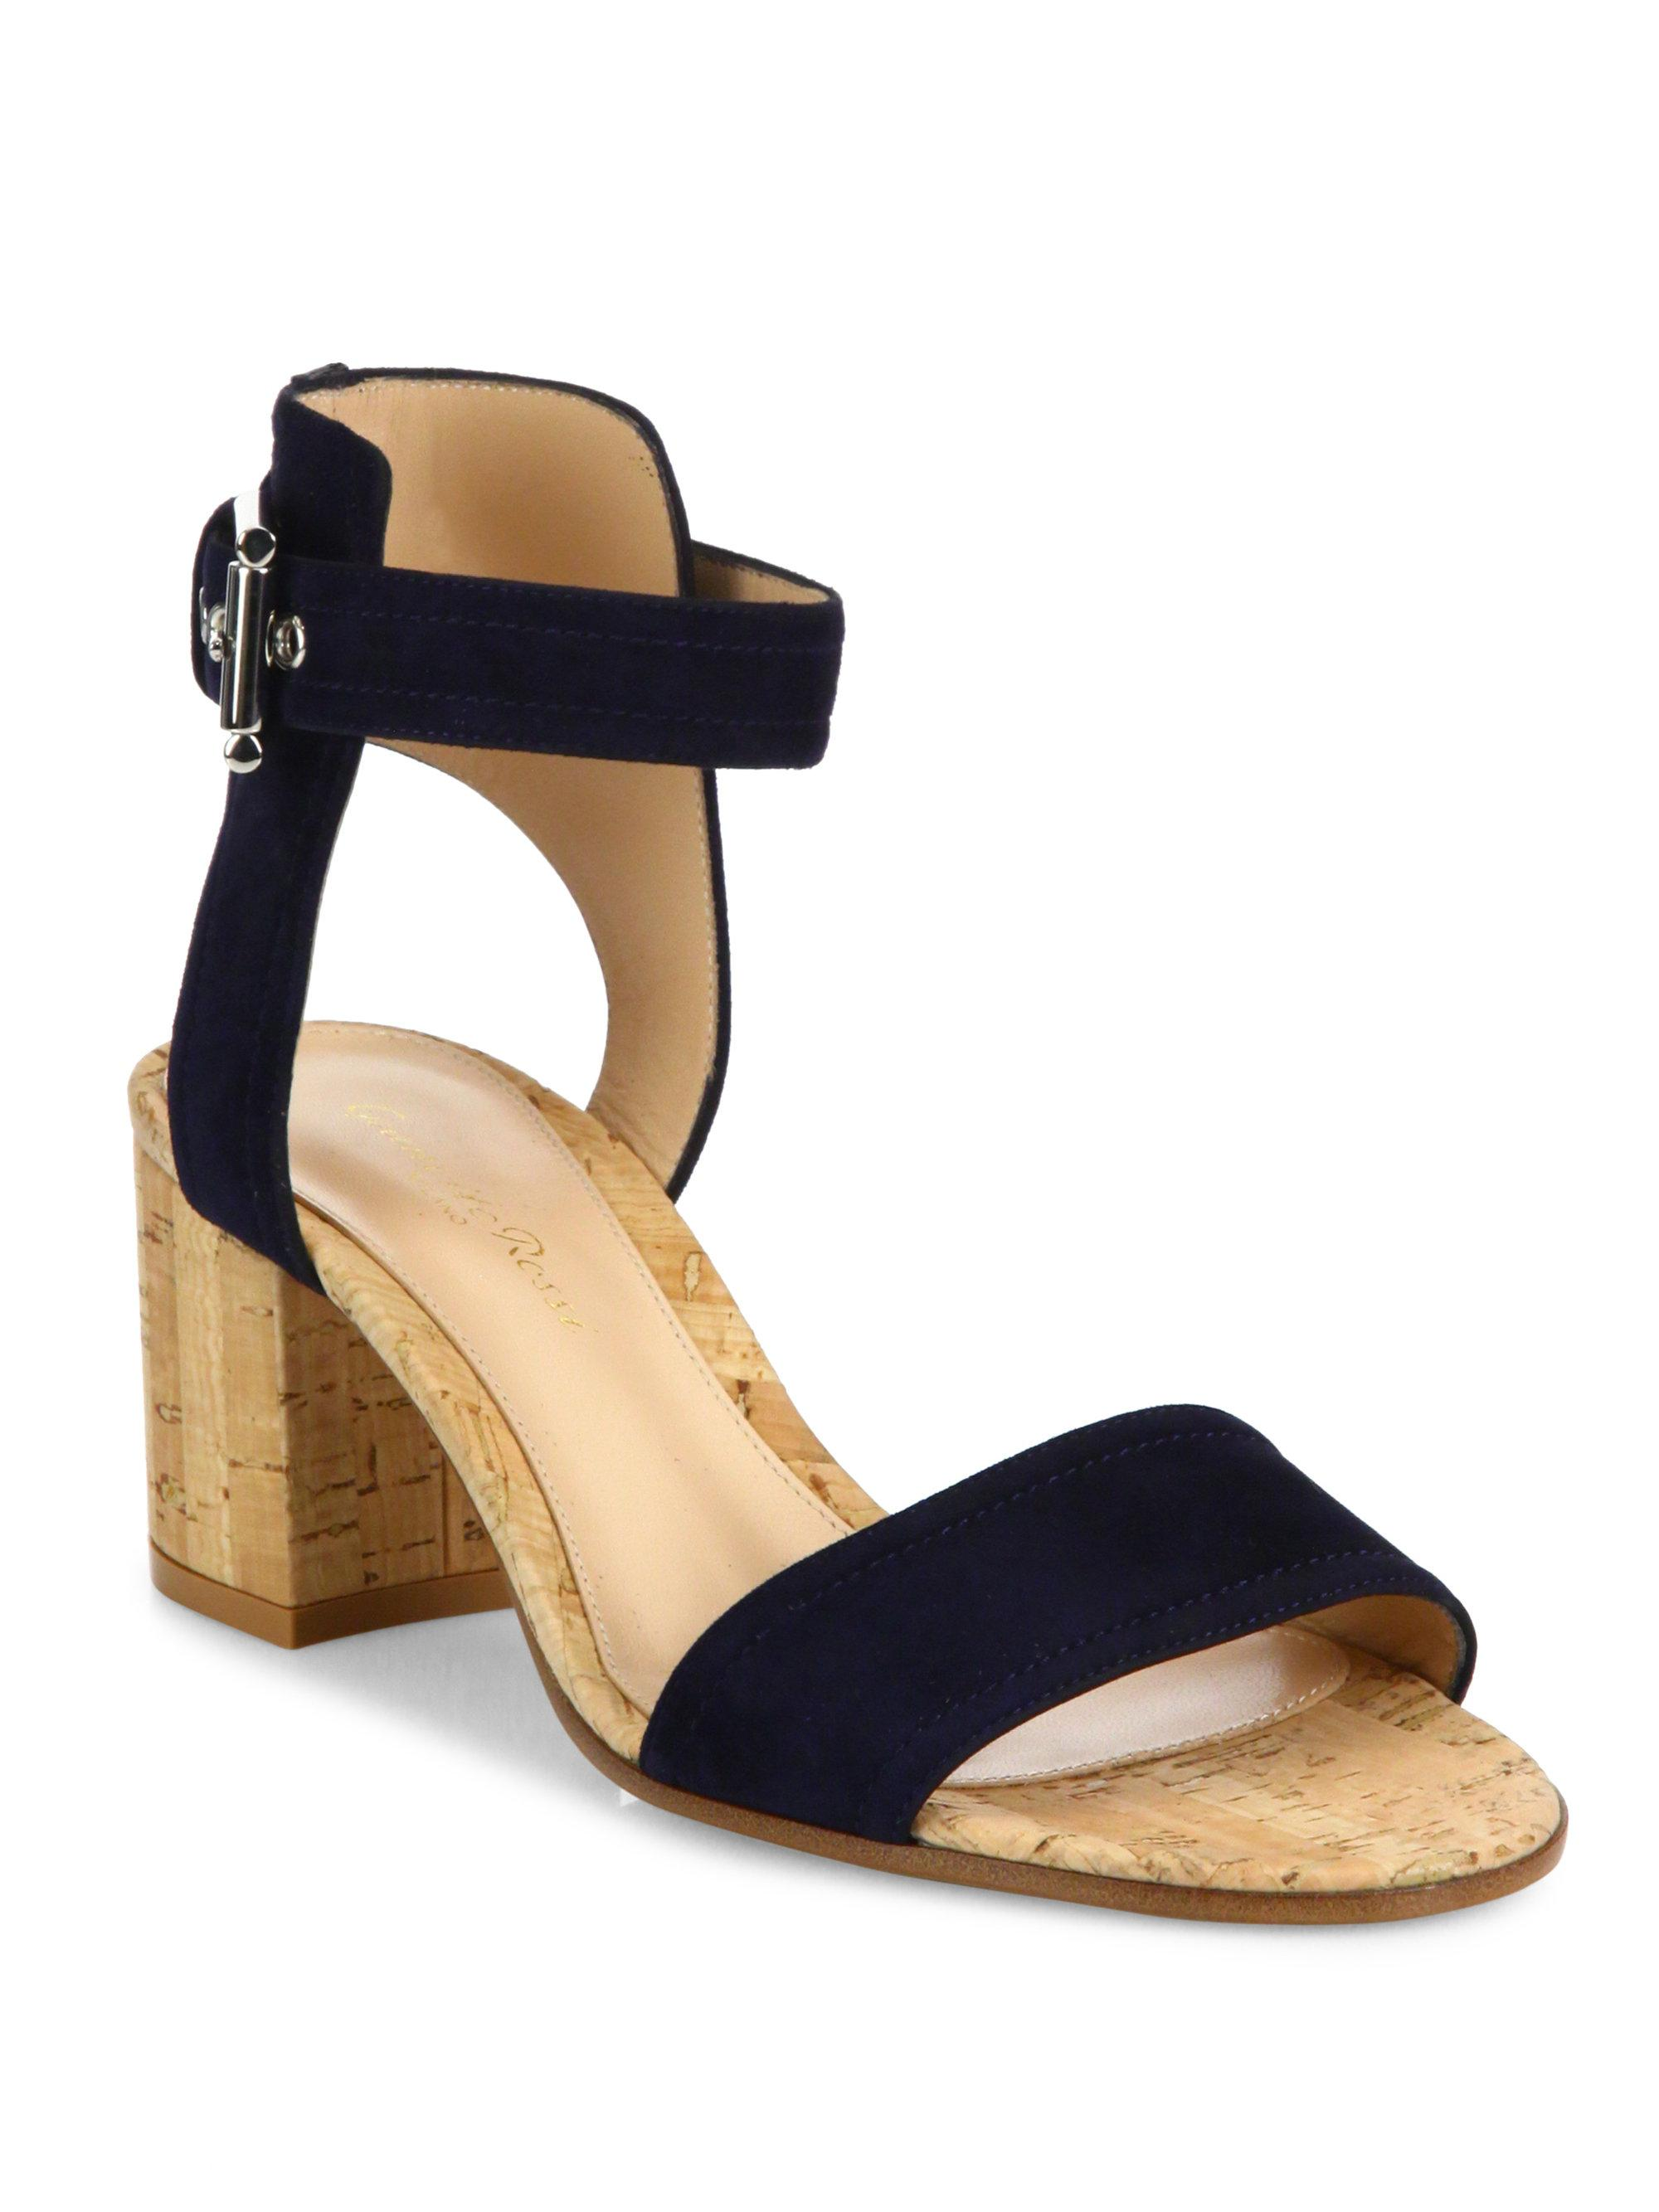 Gianvito Rossi. Women's Blue Suede Cork-heel City Sandals